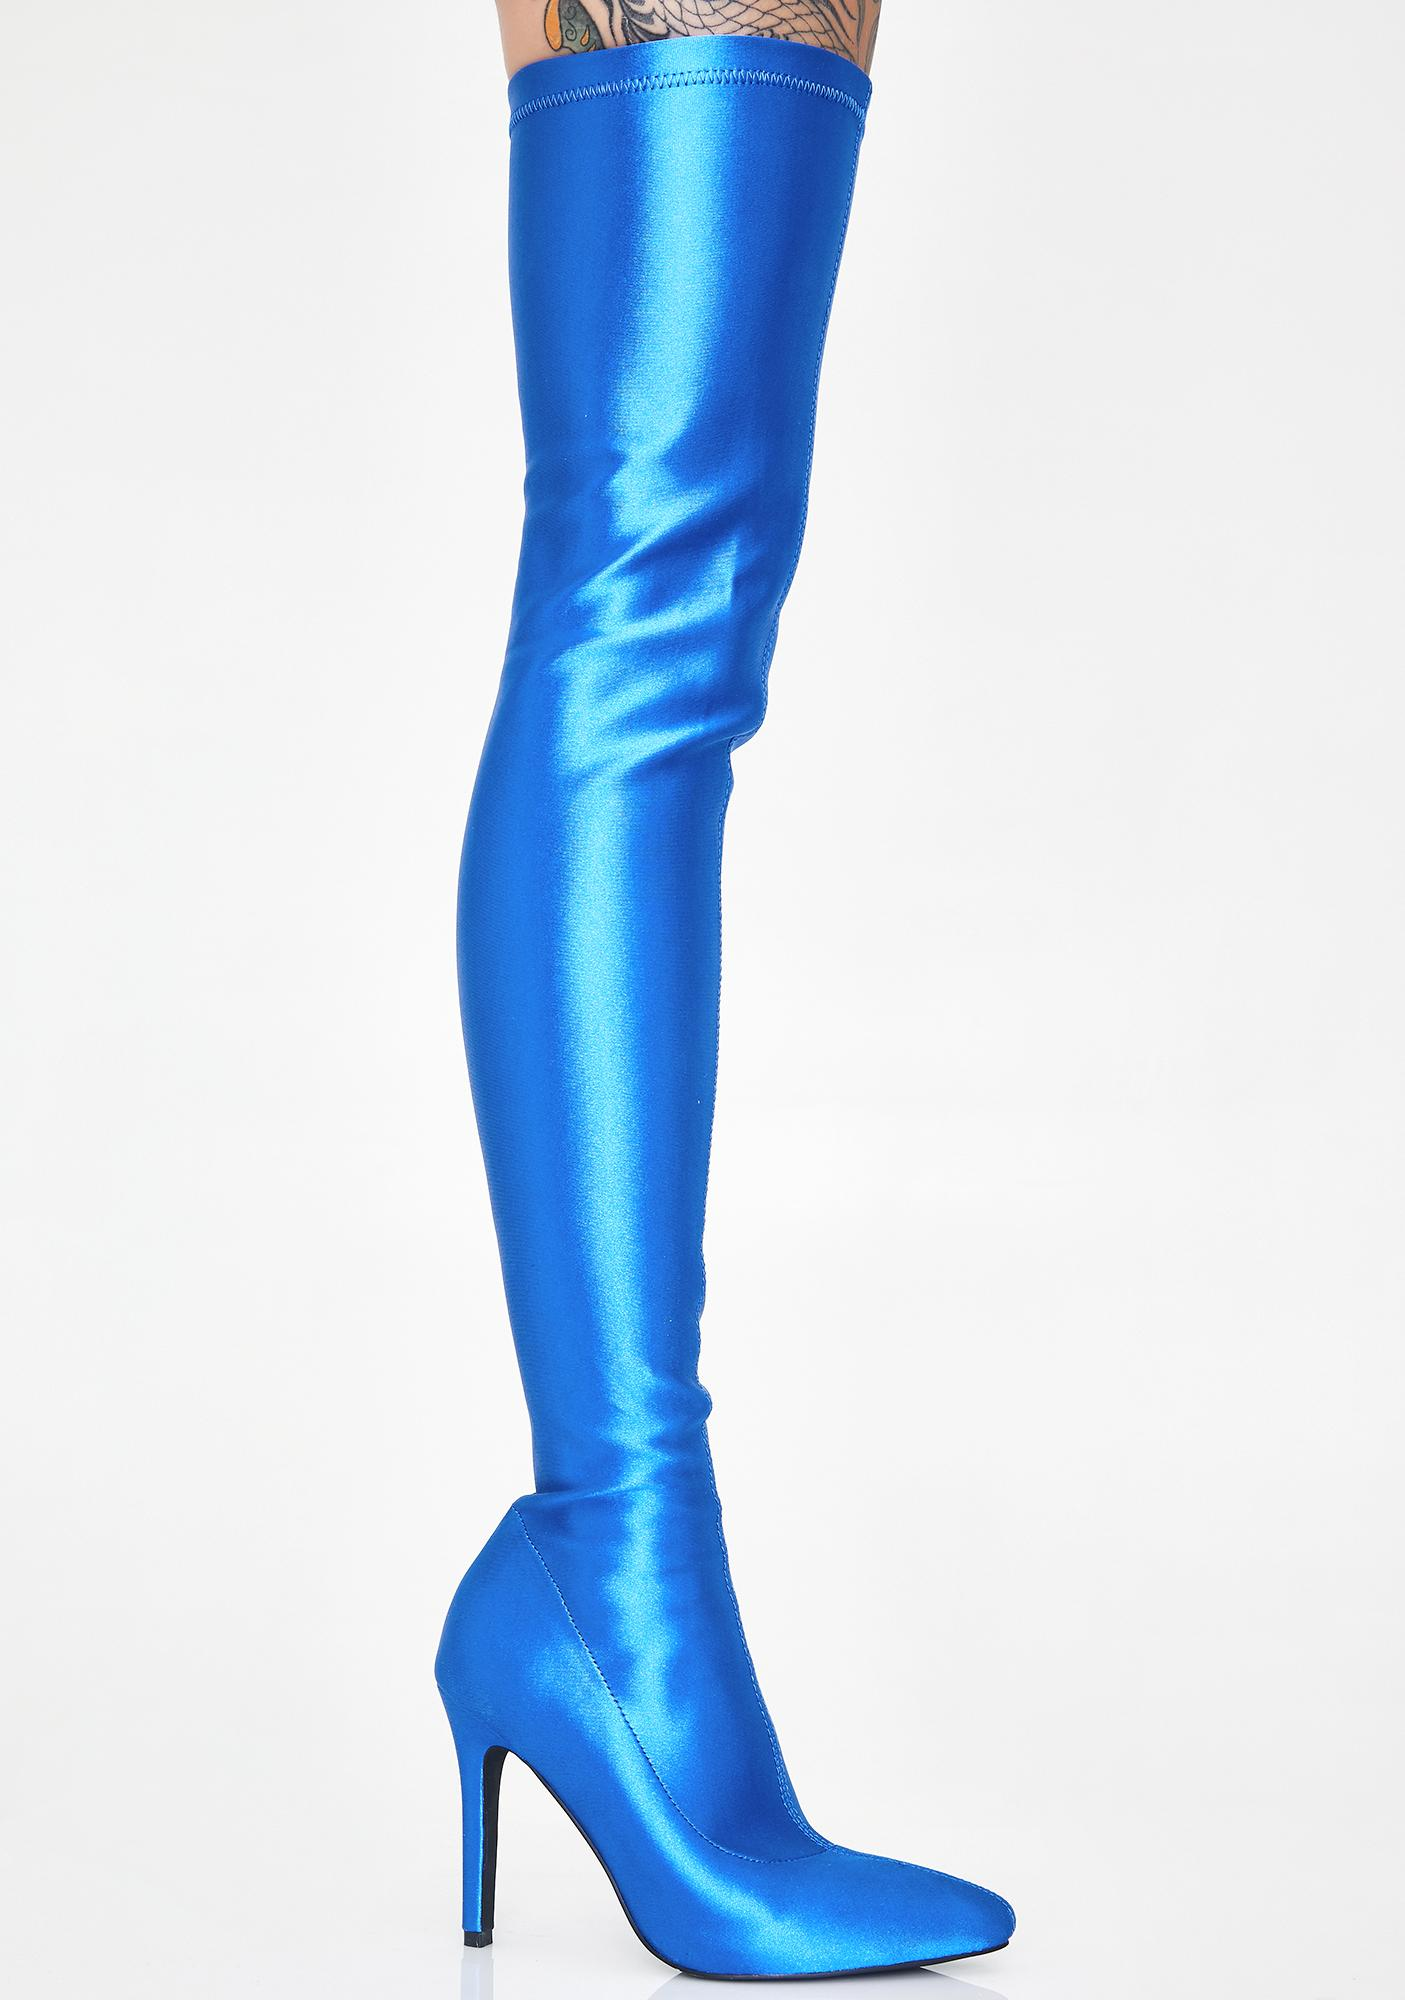 Poster Grl Viral Outlaw Thigh High Boots